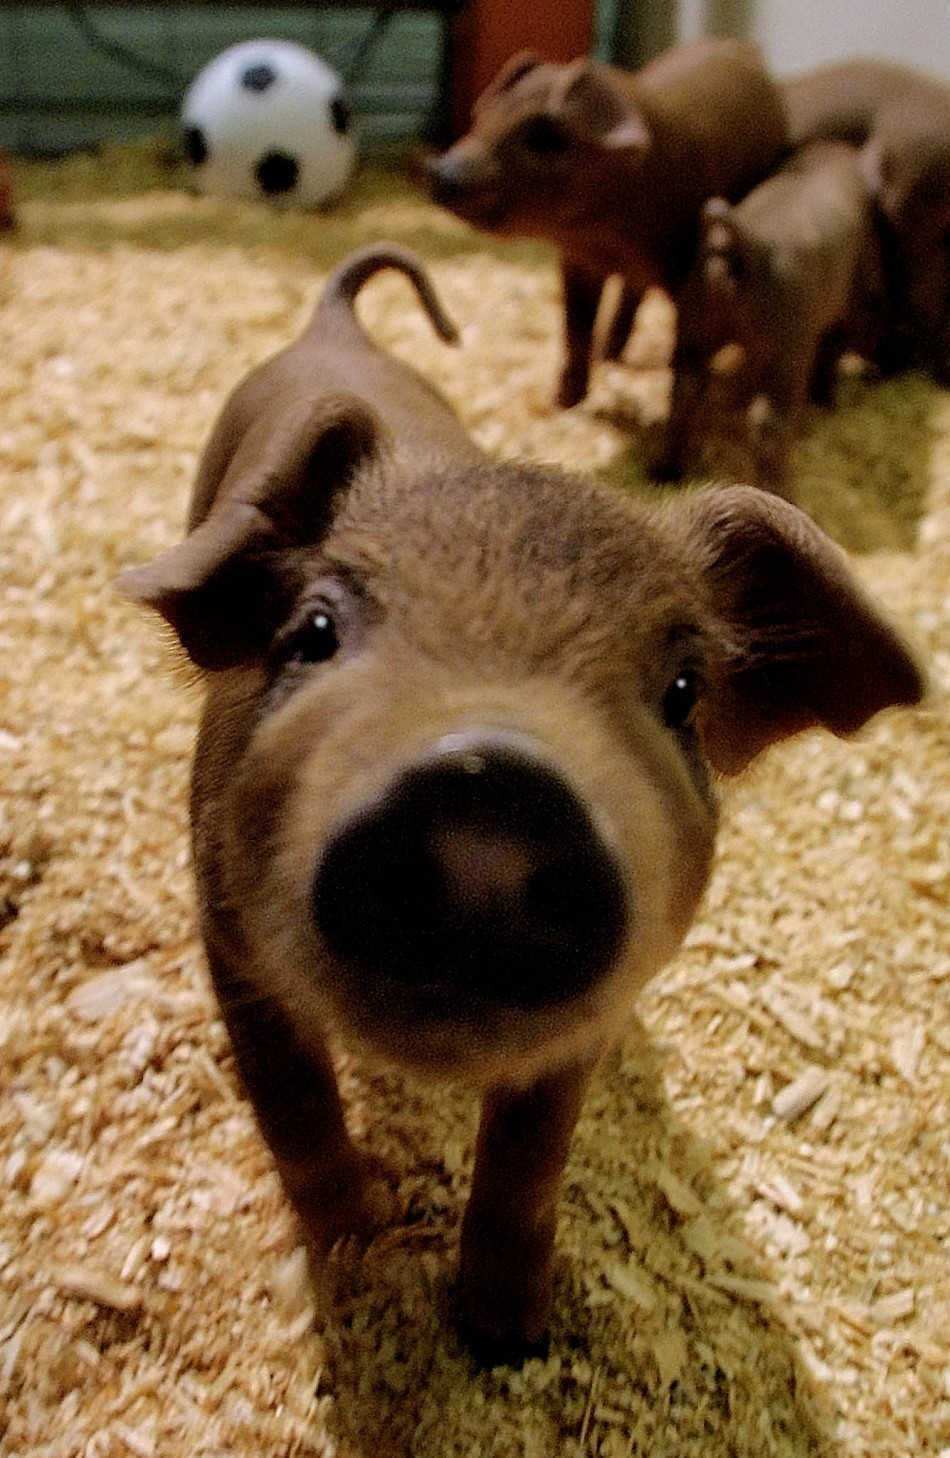 CLONED PIGLETS, BOER GOAT AND CATTLE ON DISPLAY AS TEXAS AM UNIVERSITY BECOMES FIRST ACADEMIC INSTITUTION TO CLONE THREE SPECIES.